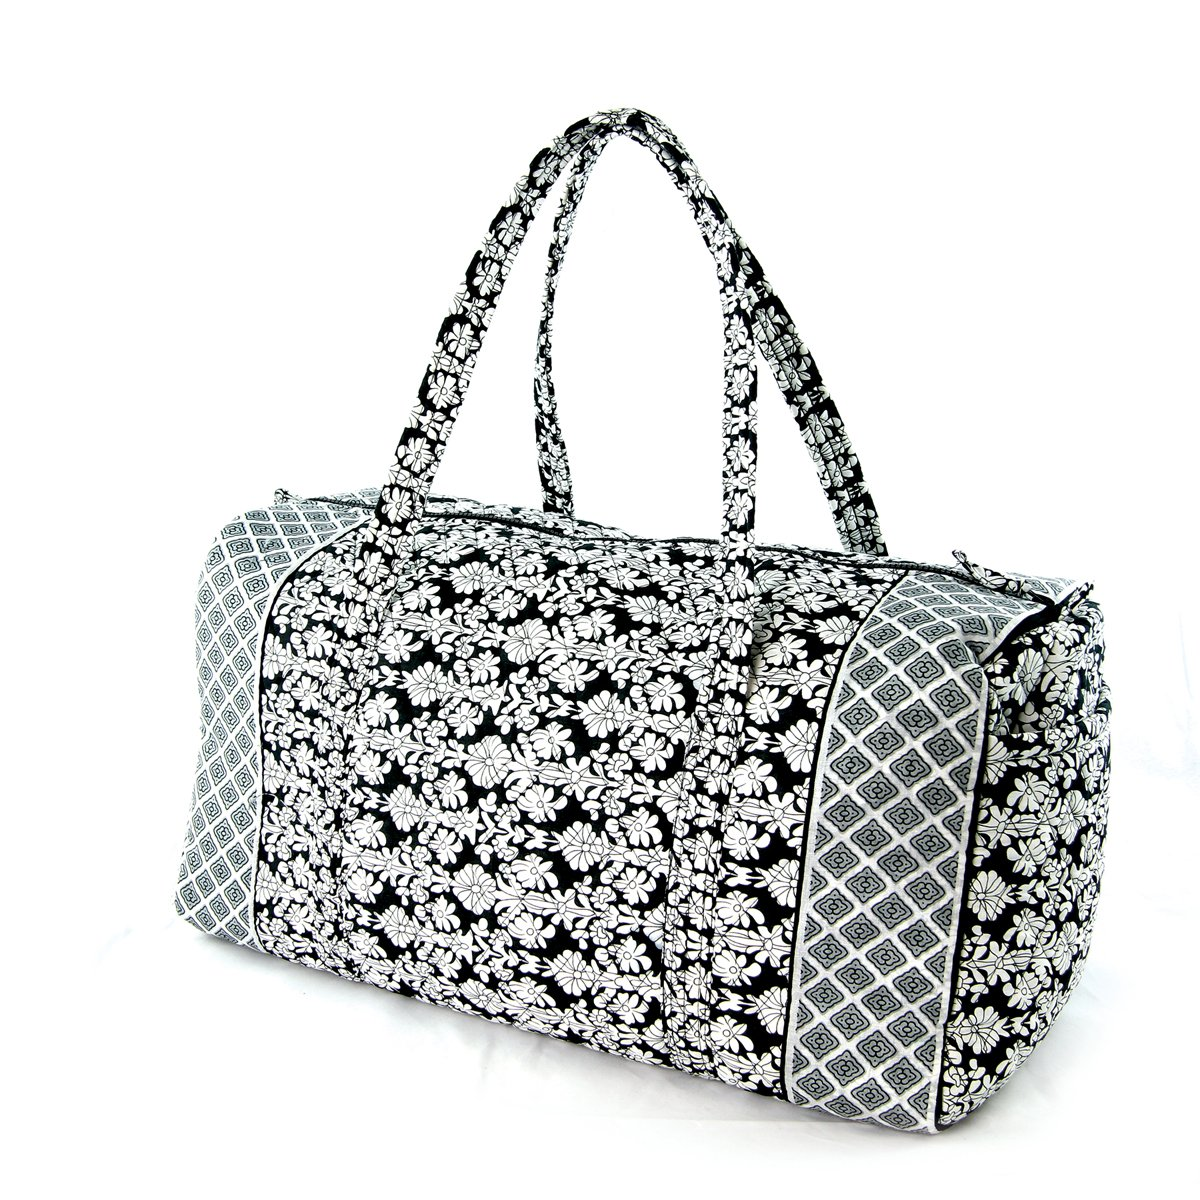 Floral Quilted Cotton Duffle Bag Black/White by WonderMolly (Image #2)